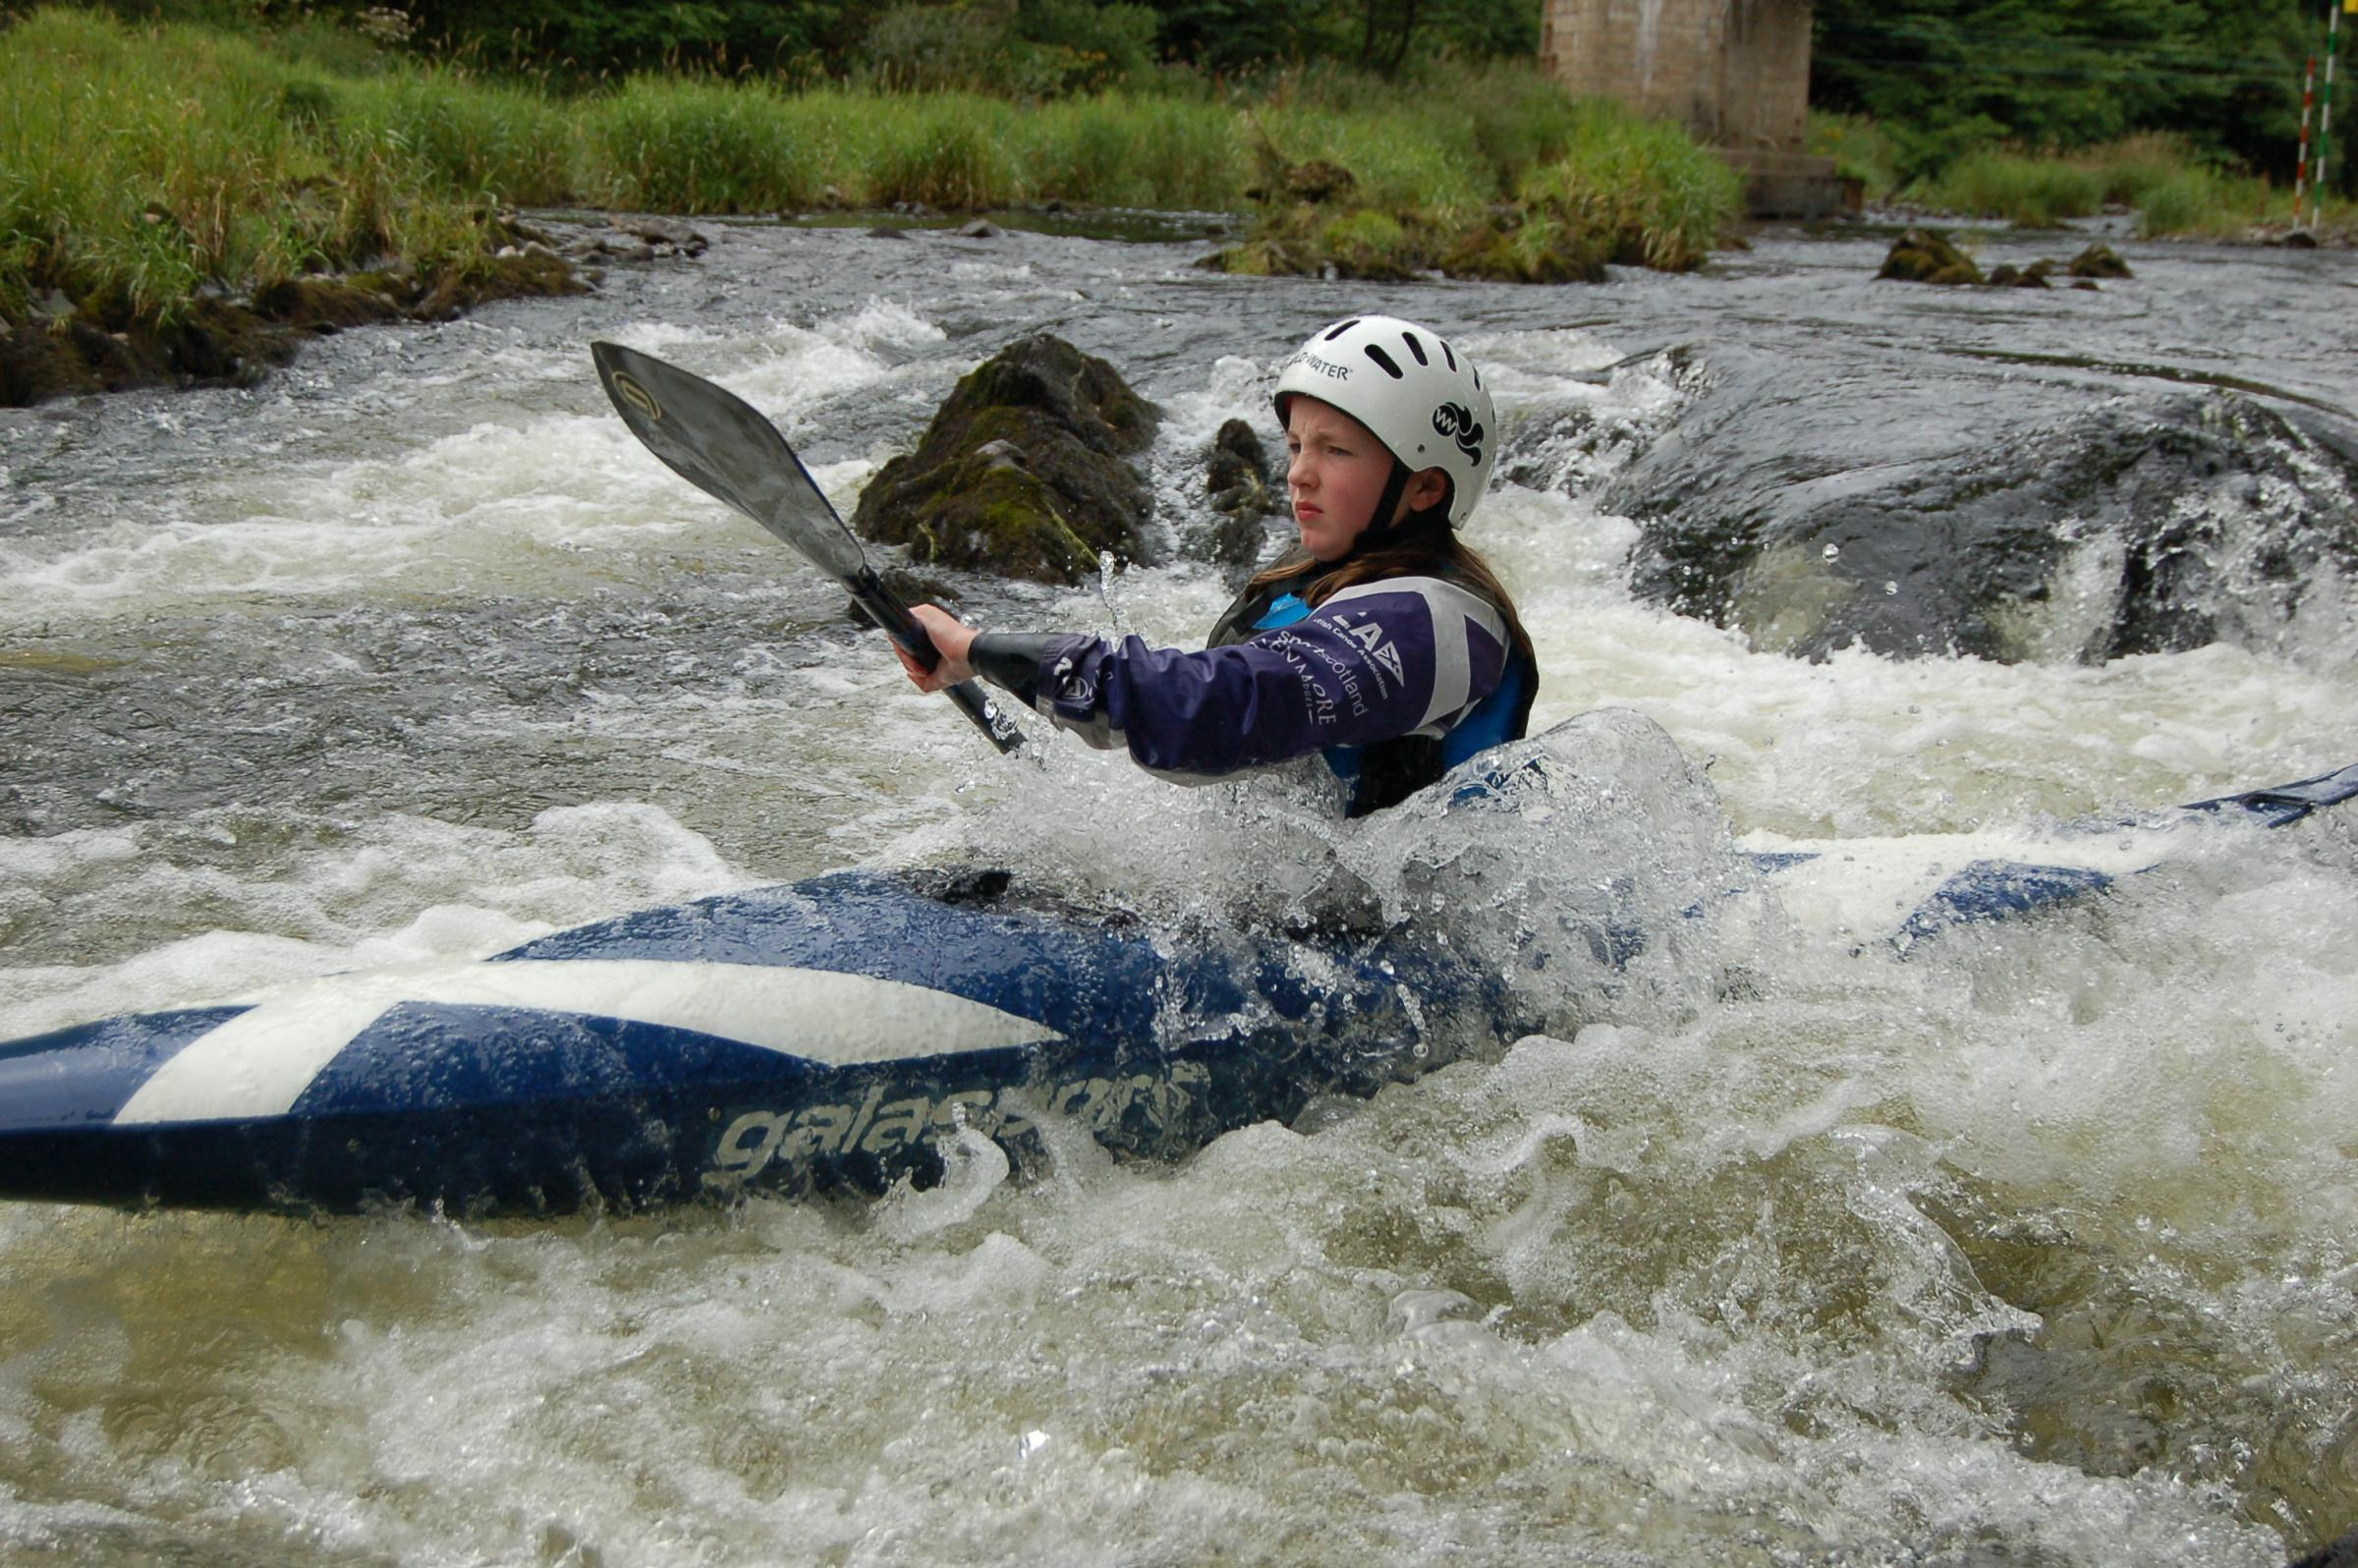 Olivia Wears became Scottish campion in slalom kayaking this summer